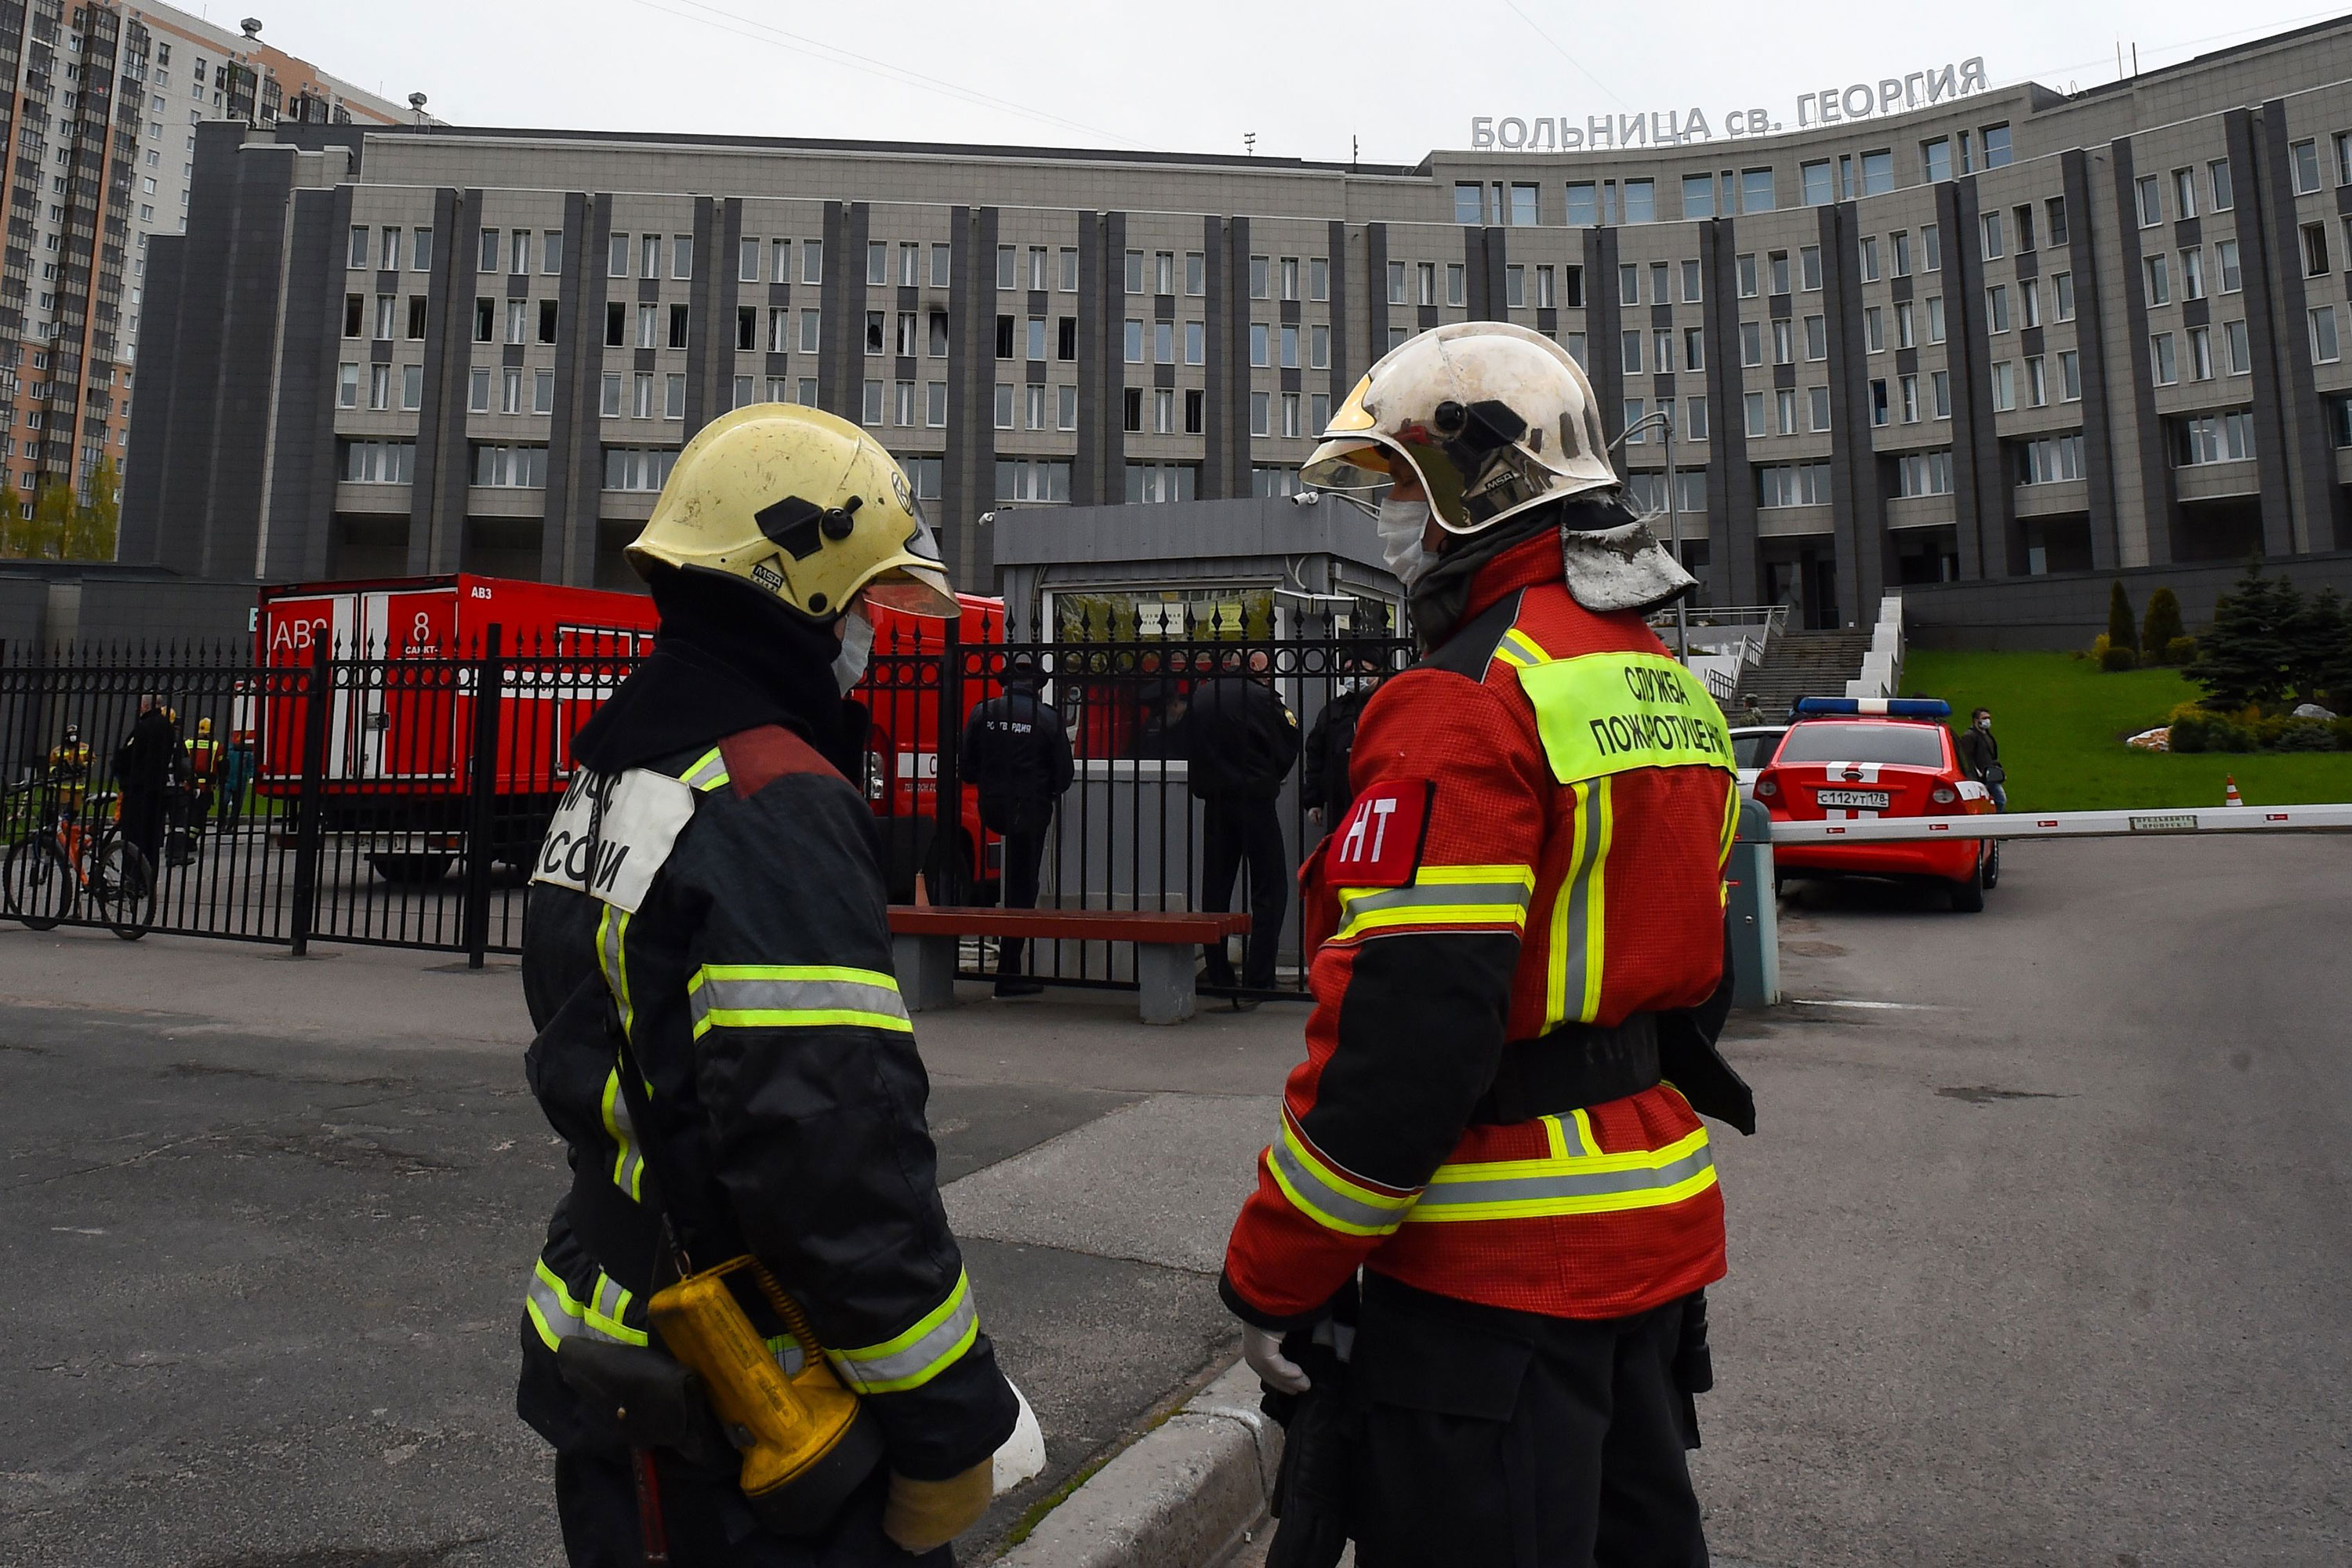 Firefighters respond to a fire at the Saint George hospital in St. Petersburg, Russia, on May 12.